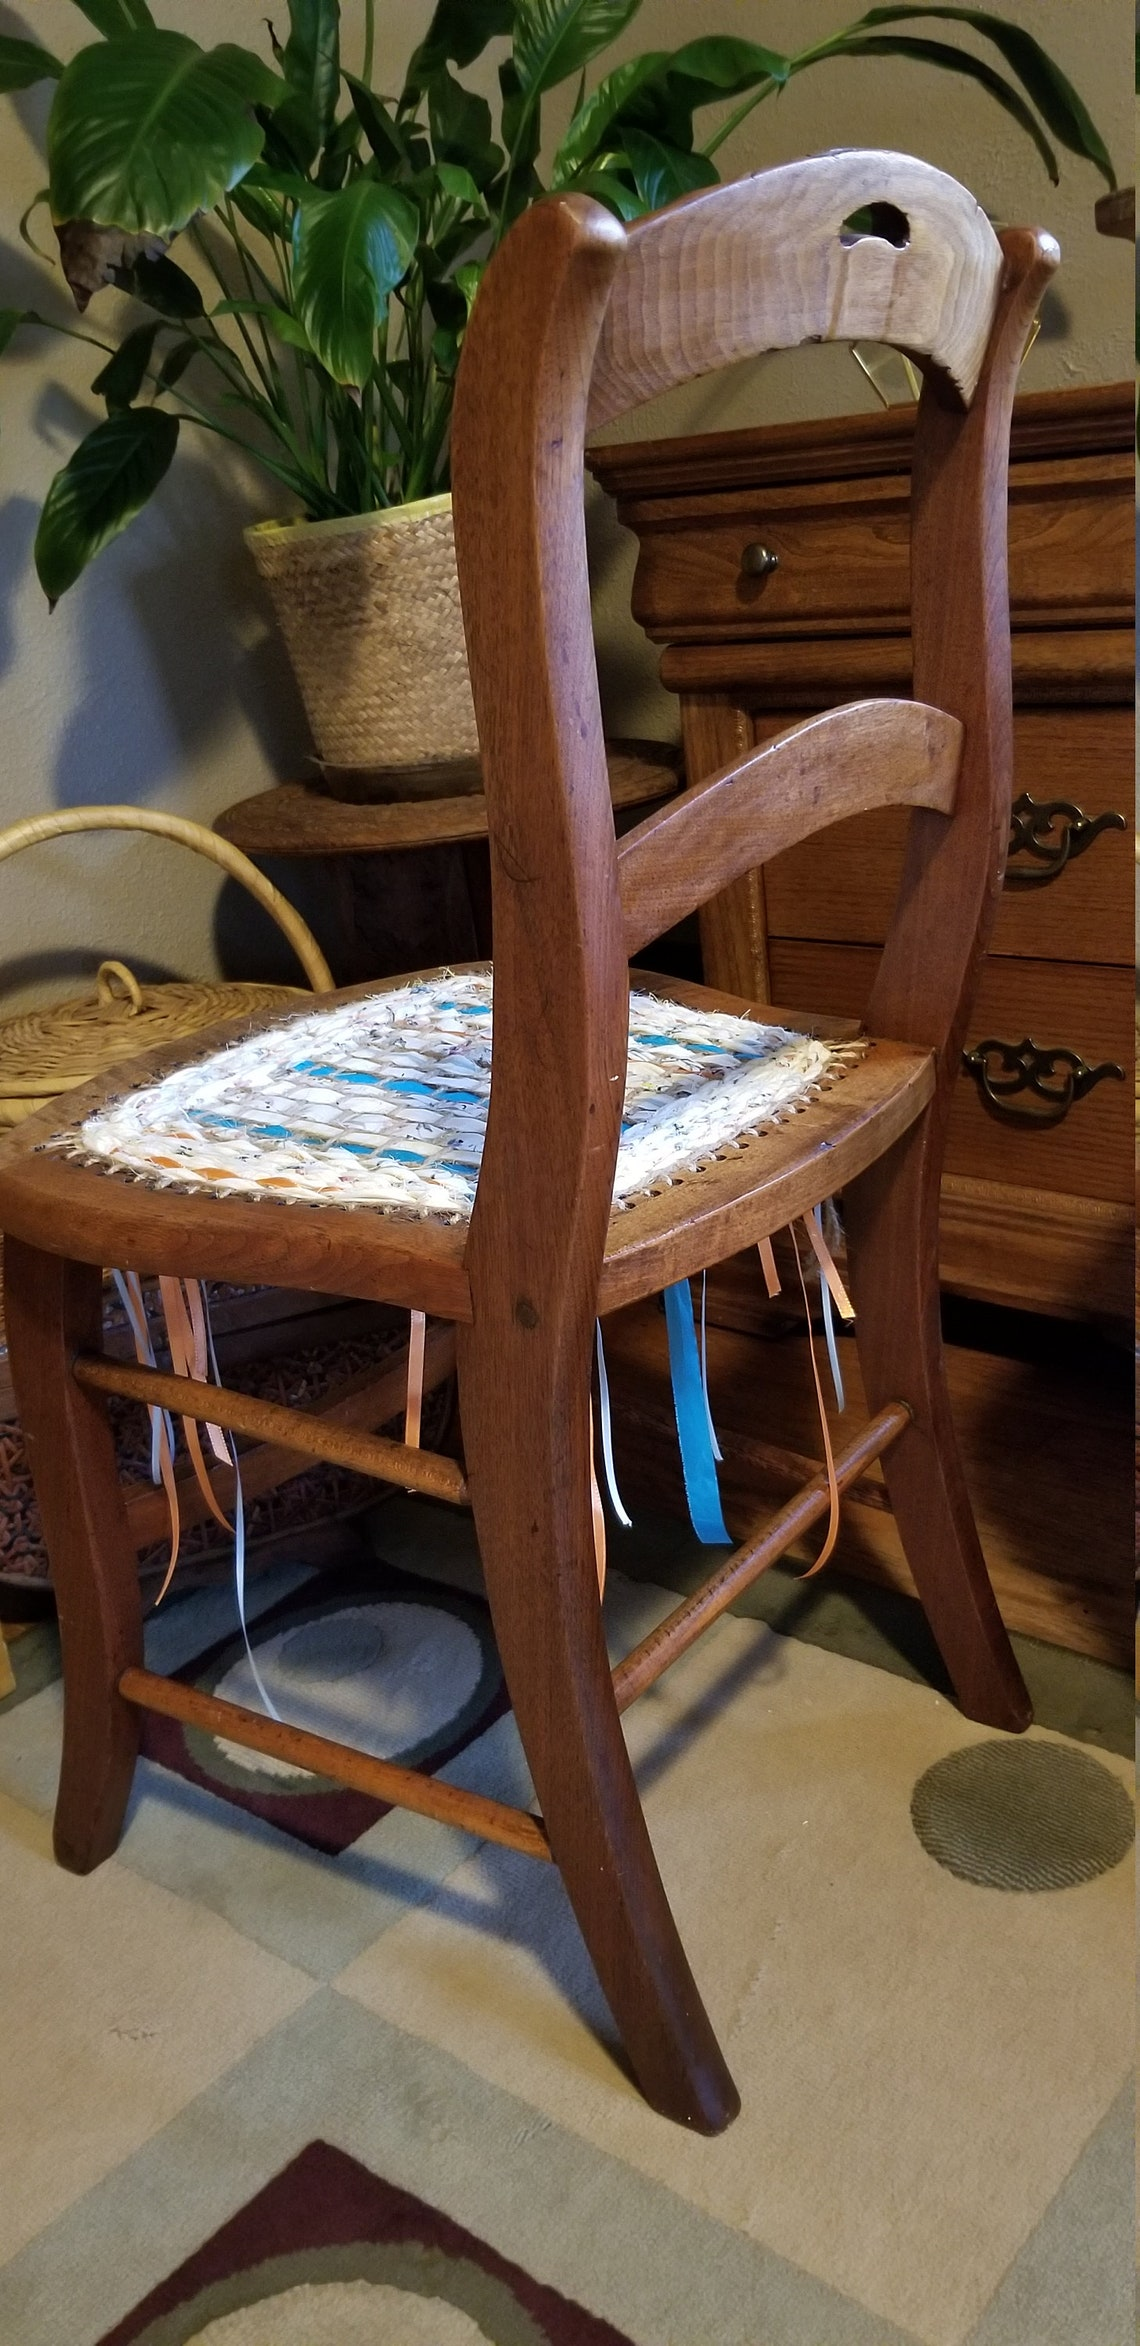 Wooden Upcycled Boho Side Chair with Jute, Fabric and Ribbon Woven Seat